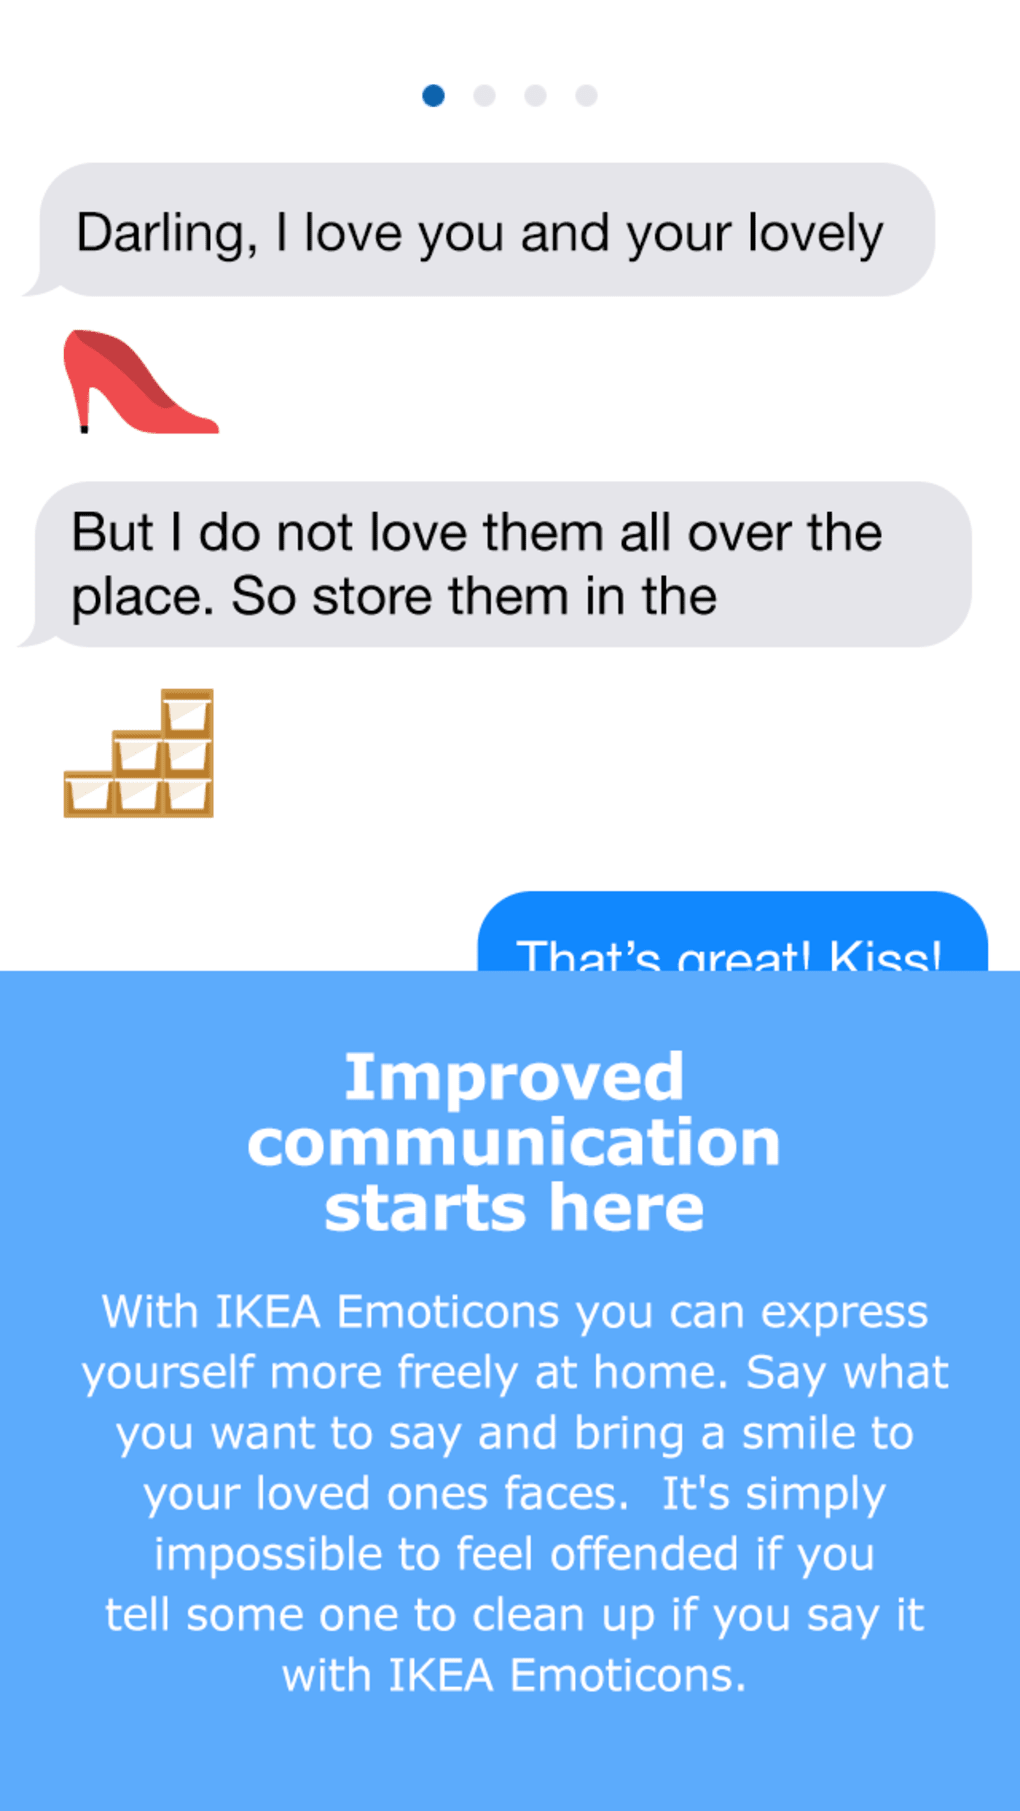 Ikea Emoticons for iPhone - Download